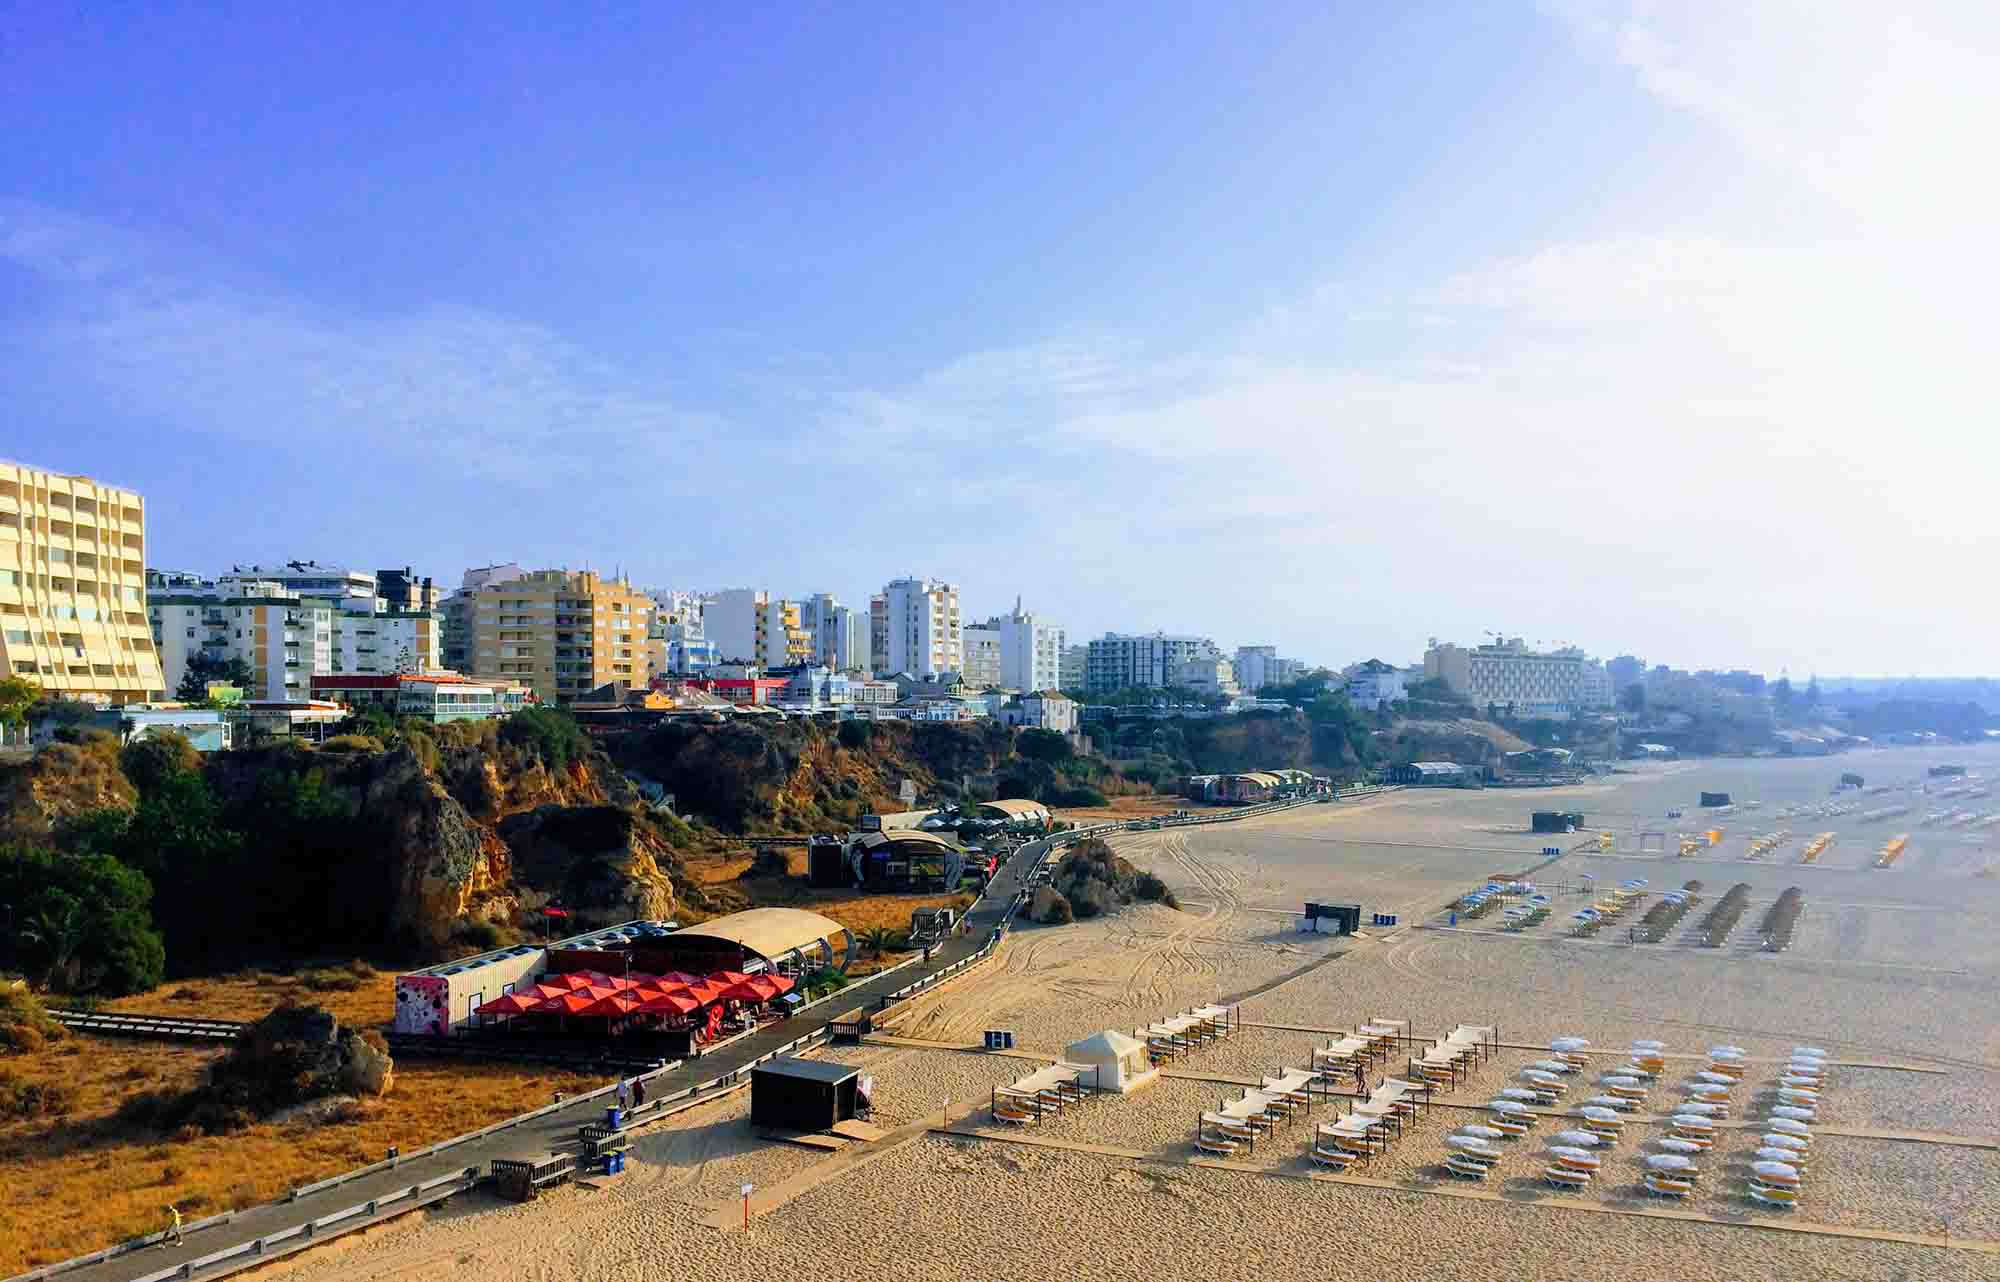 Praia da Rocha morning